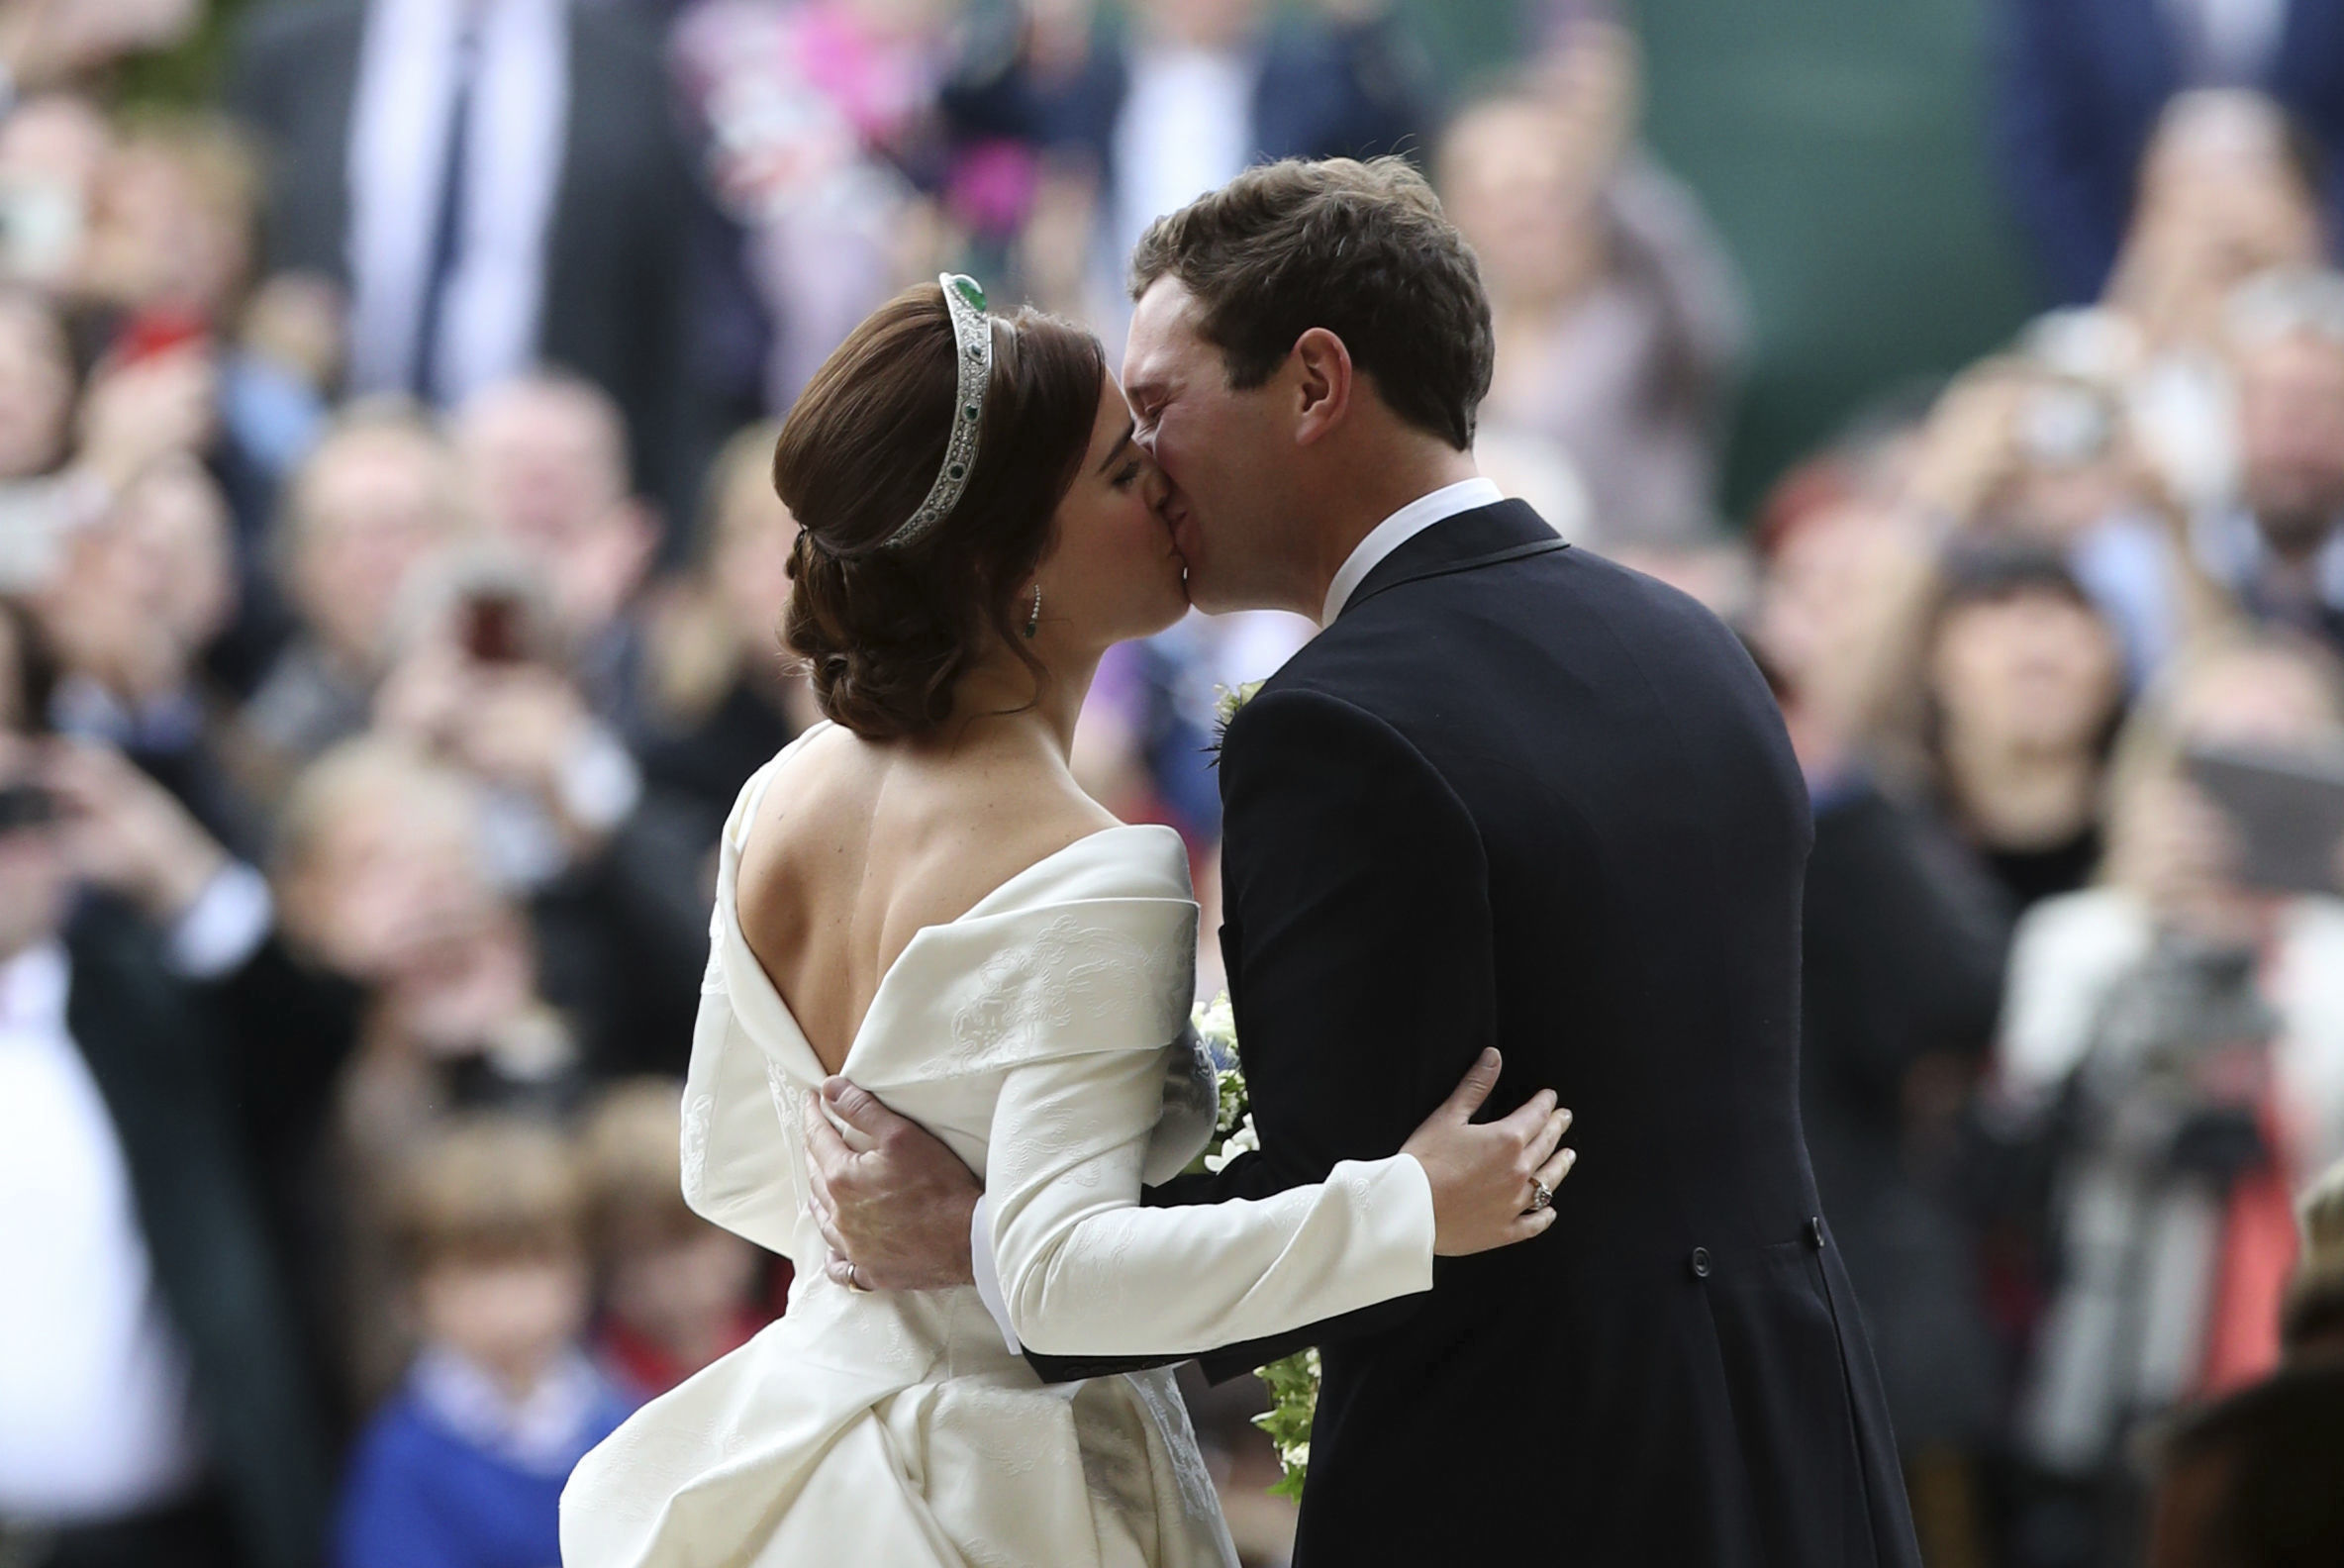 <div class='meta'><div class='origin-logo' data-origin='none'></div><span class='caption-text' data-credit='Yui Mok, Pool via AP'>Princess Eugenie of York and Jack Brooksbank kiss after their wedding in St George's Chapel, Windsor Castle, near London, England, Friday Oct. 12, 2018.</span></div>